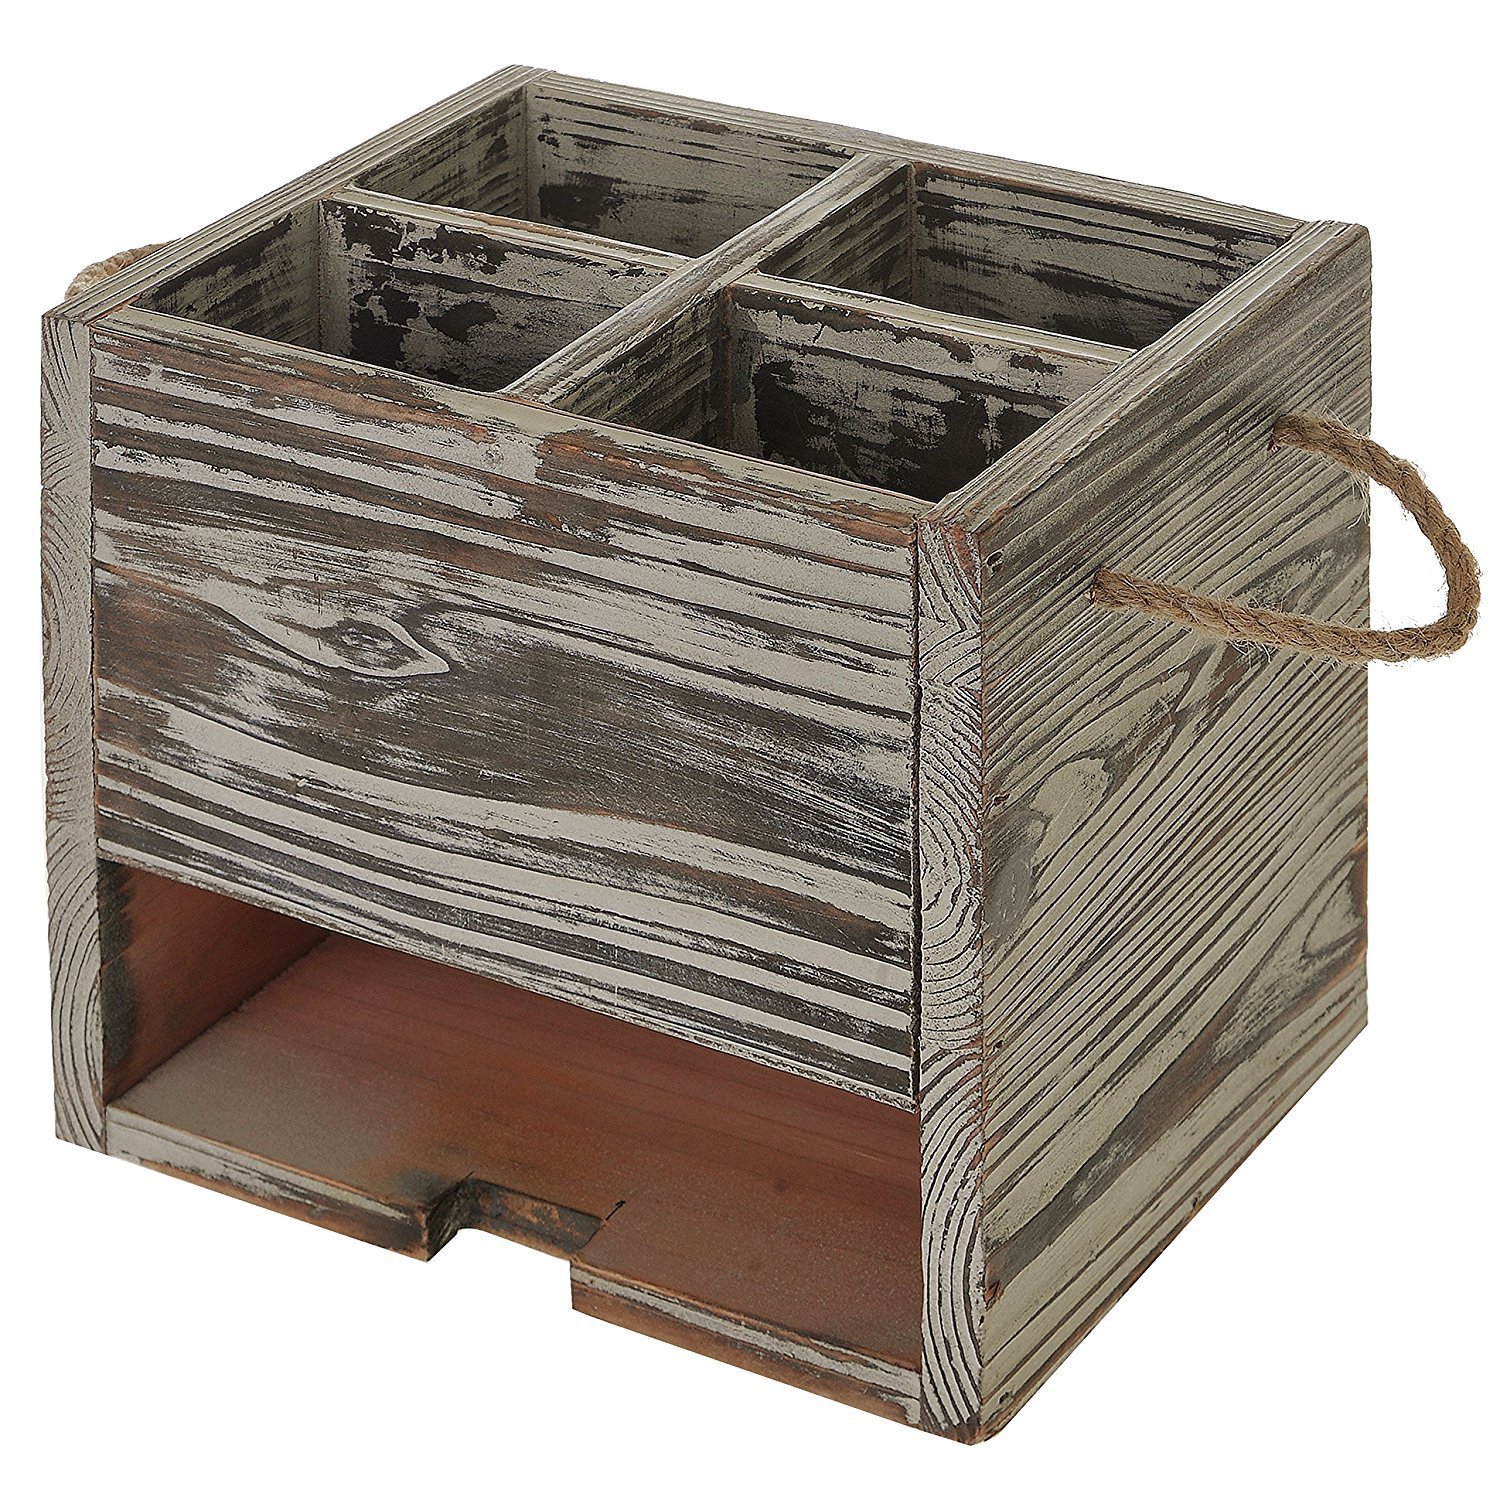 Wood Kitchen Dining Utensil Organizer Caddy with Napkin Holder 4 Compartment